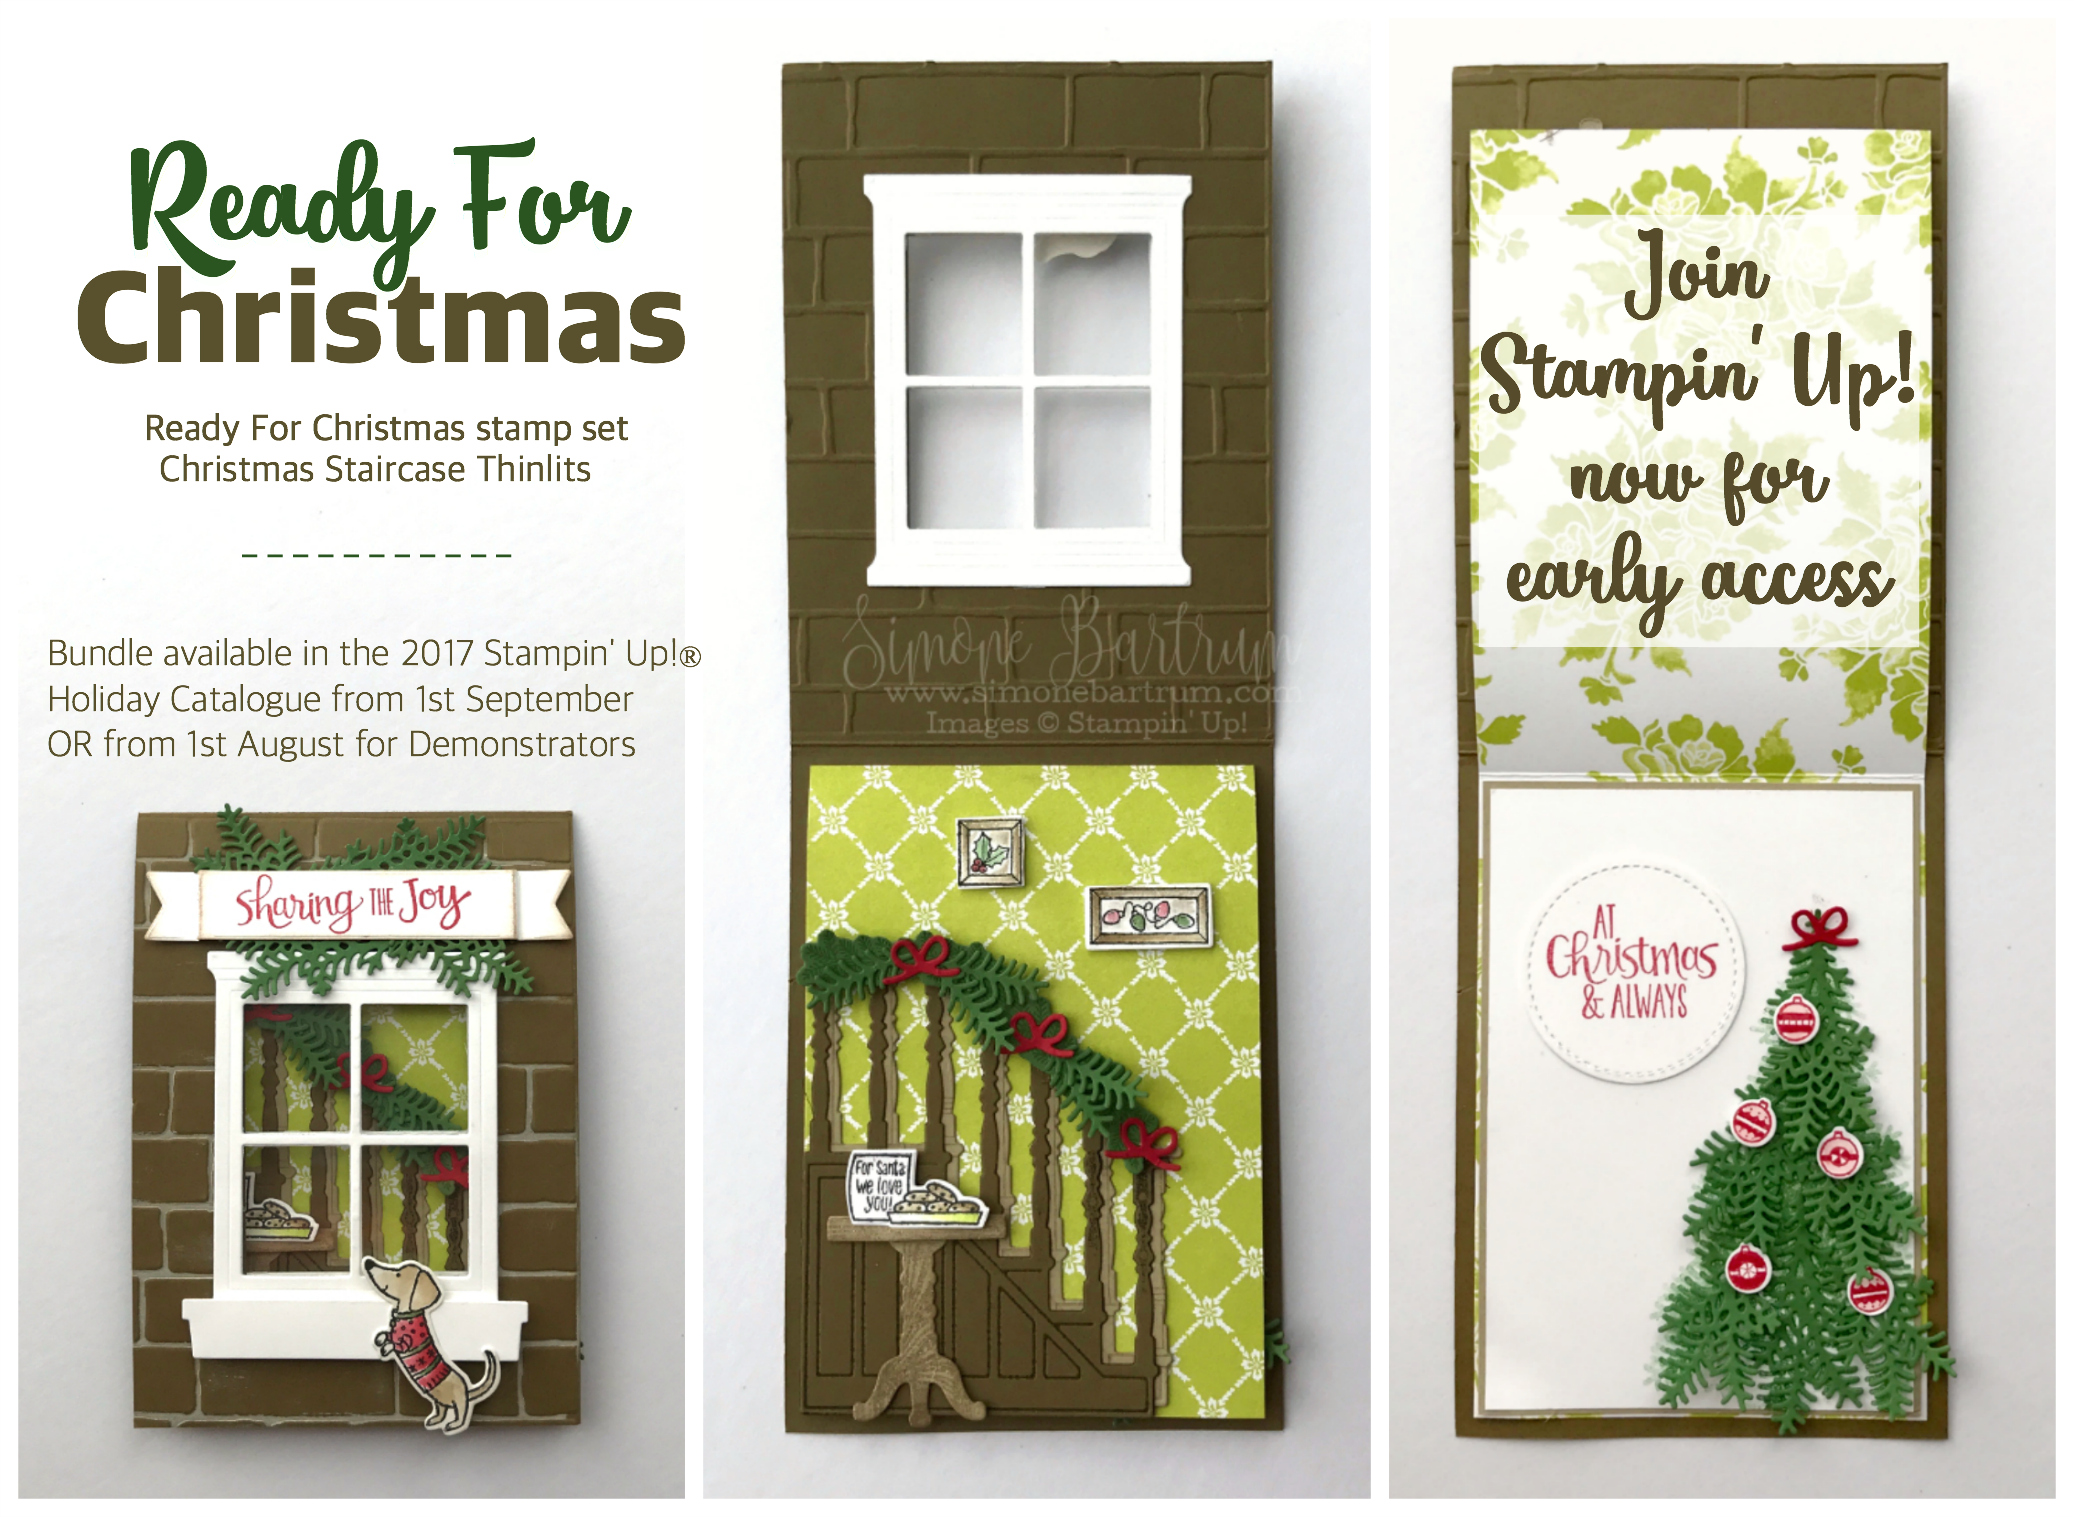 Ready for Christmas Staircase - Stampin\' Up! Holiday Catalogue